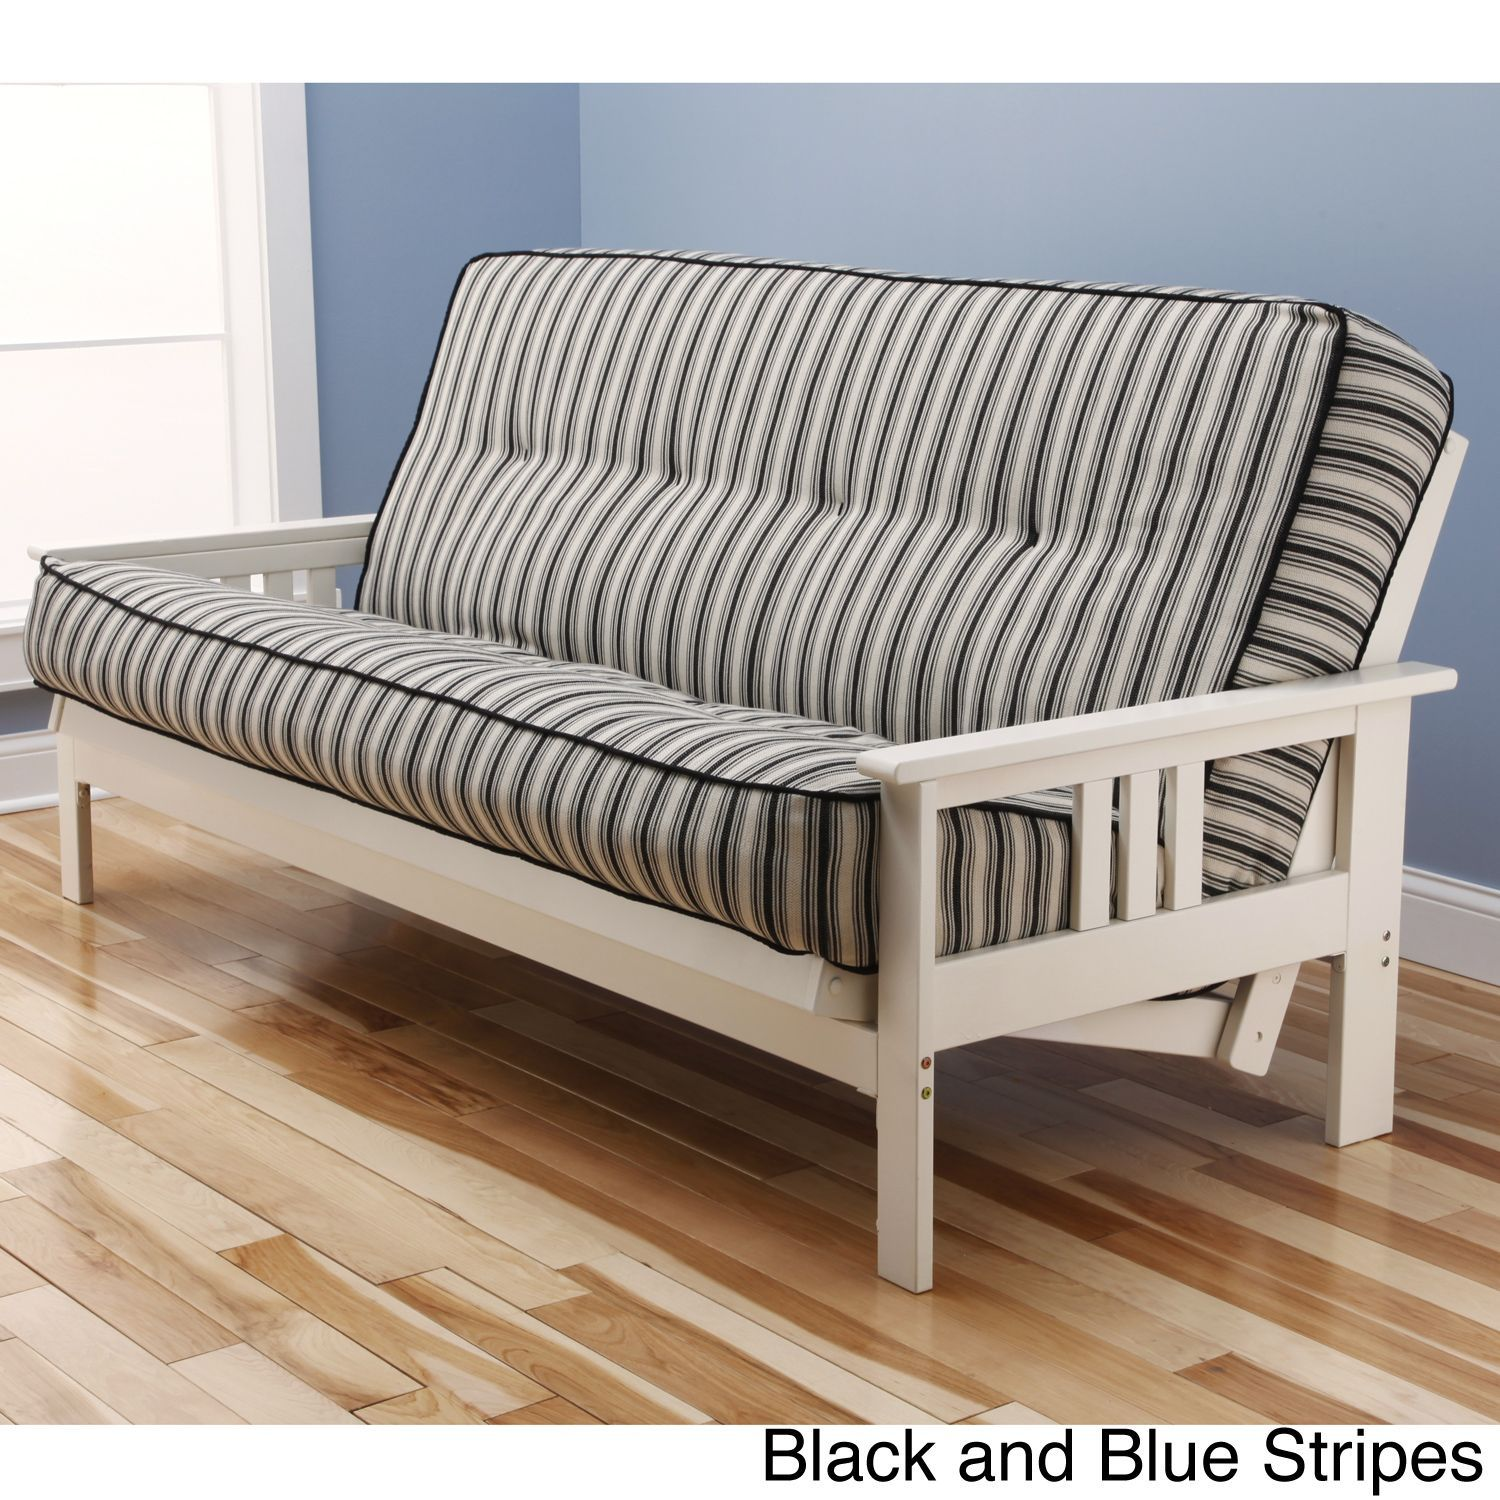 Somette Beli Mont Multi Flex Antique White Wood Futon Frame With  Innerspring Mattress Set (Black And Blue Stripes), Size Full